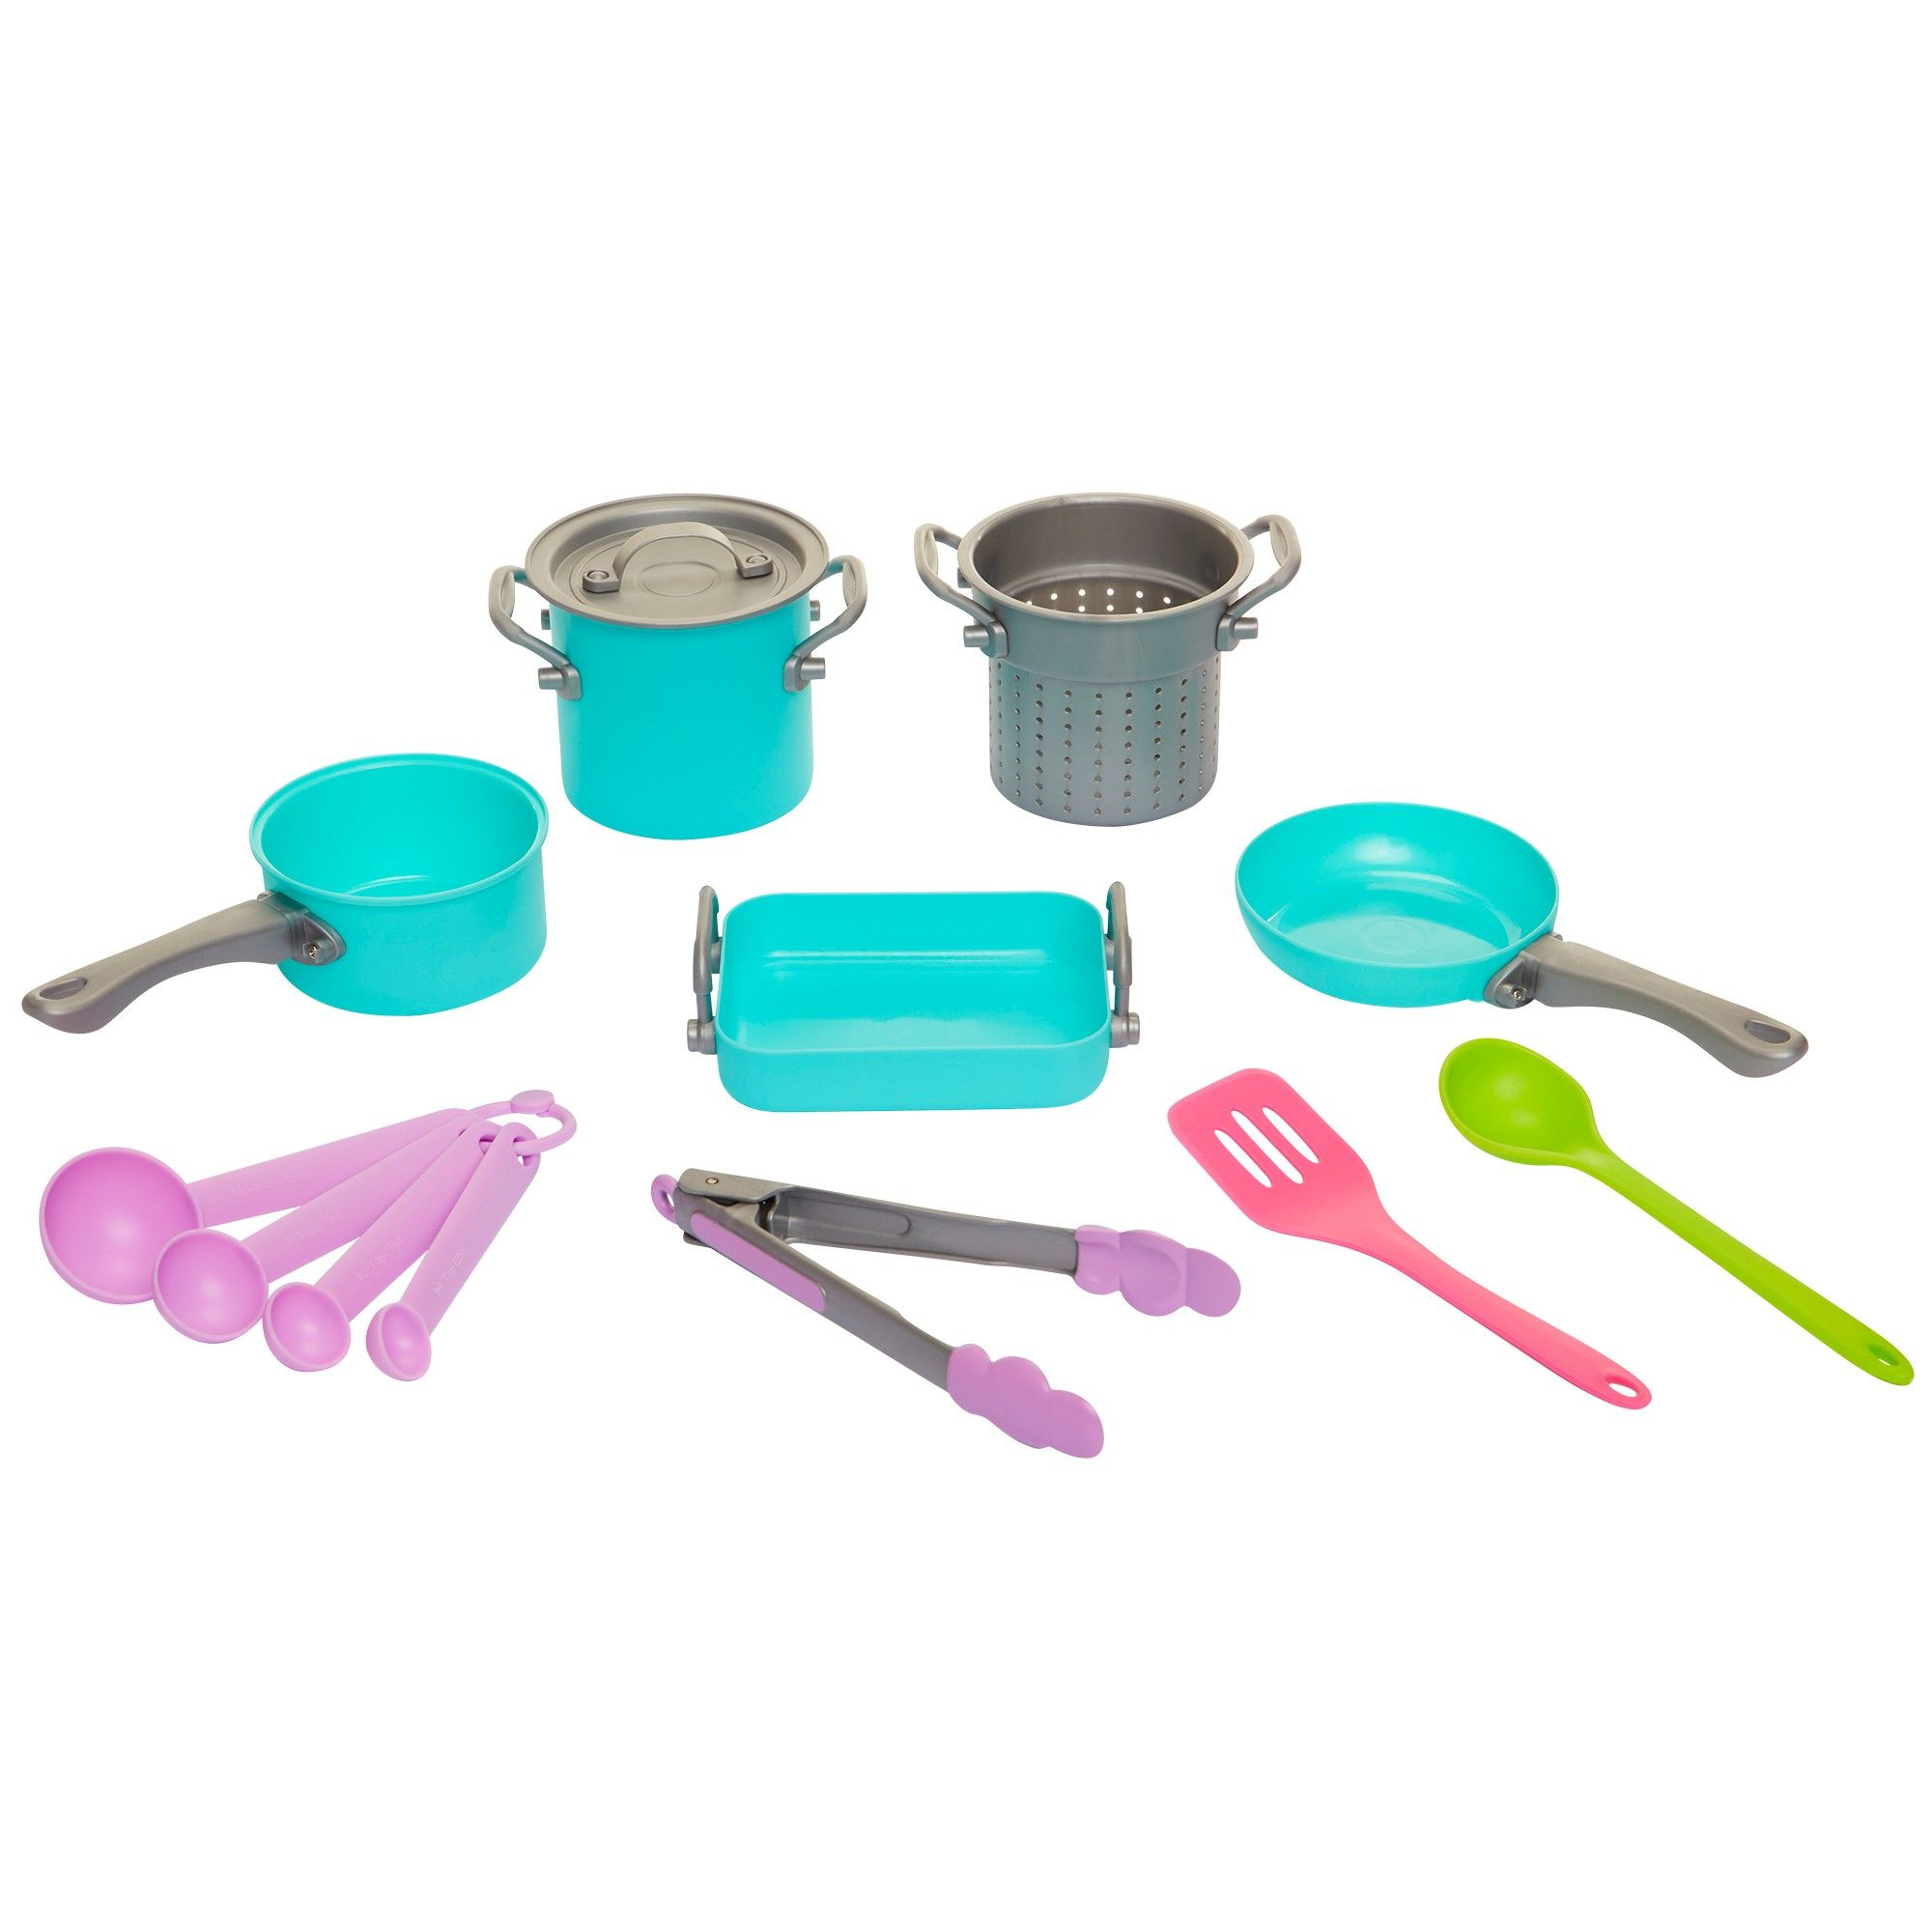 Honestly Cute the Kitchen Cookware